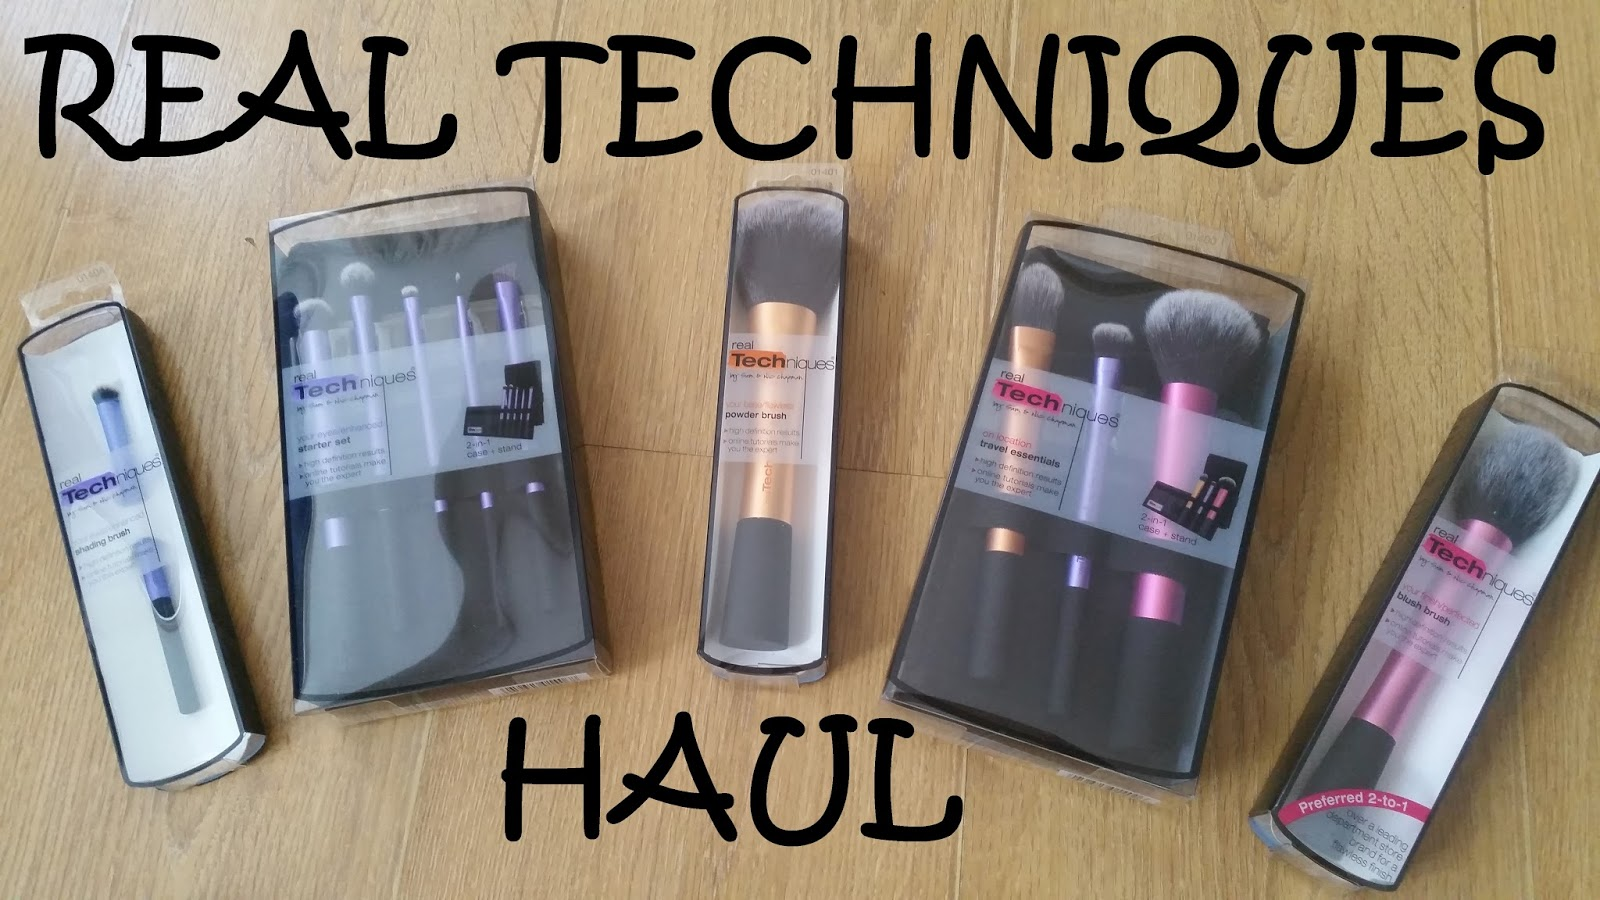 Real Techniques Haul, Sam and Nic Chapman